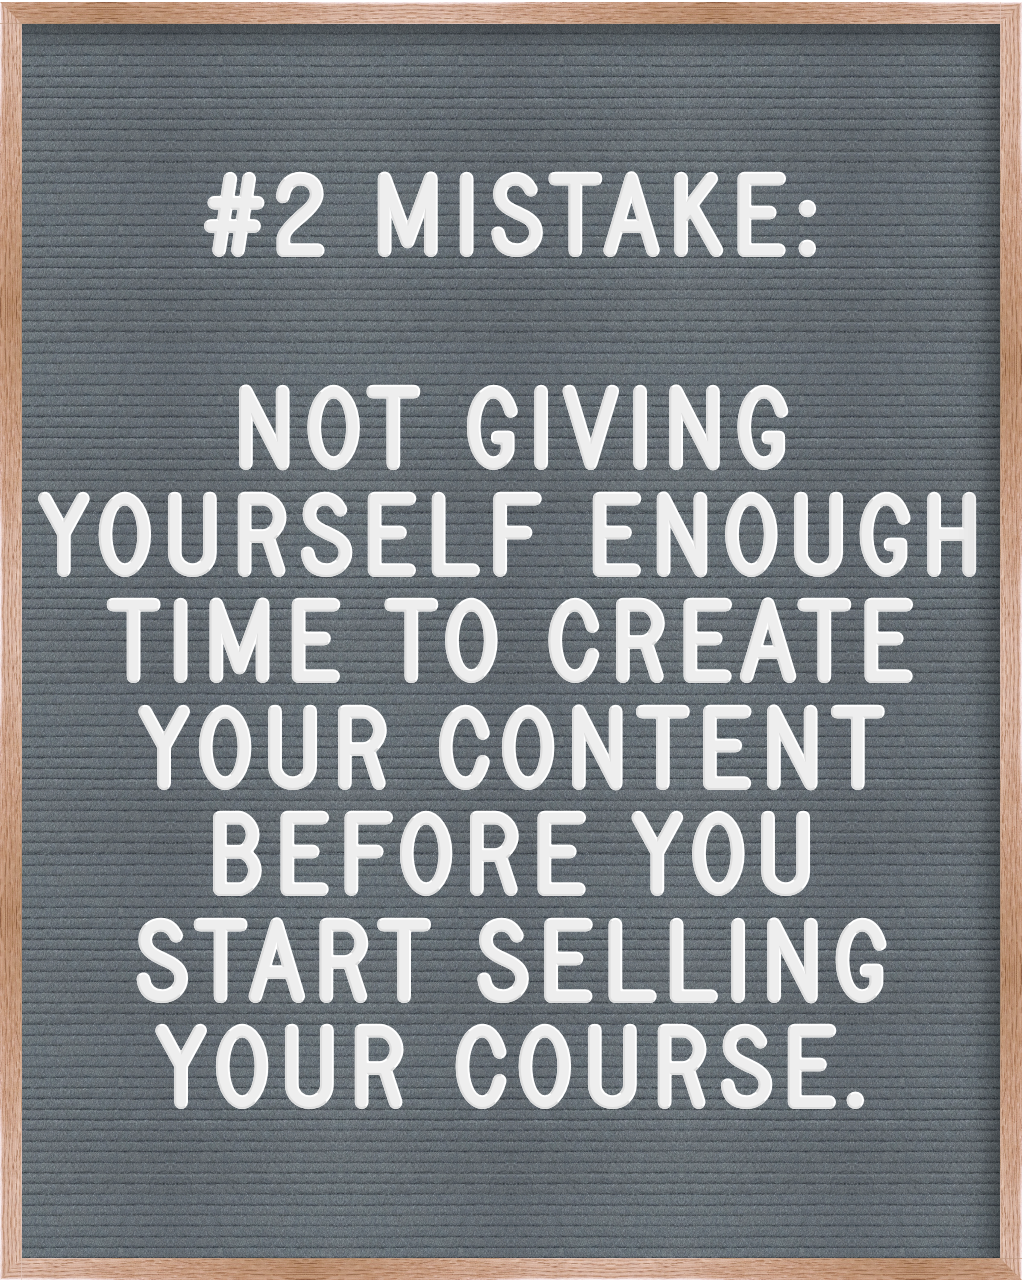 The Top 5 Mistakes to Avoid When Planning Your Online Course